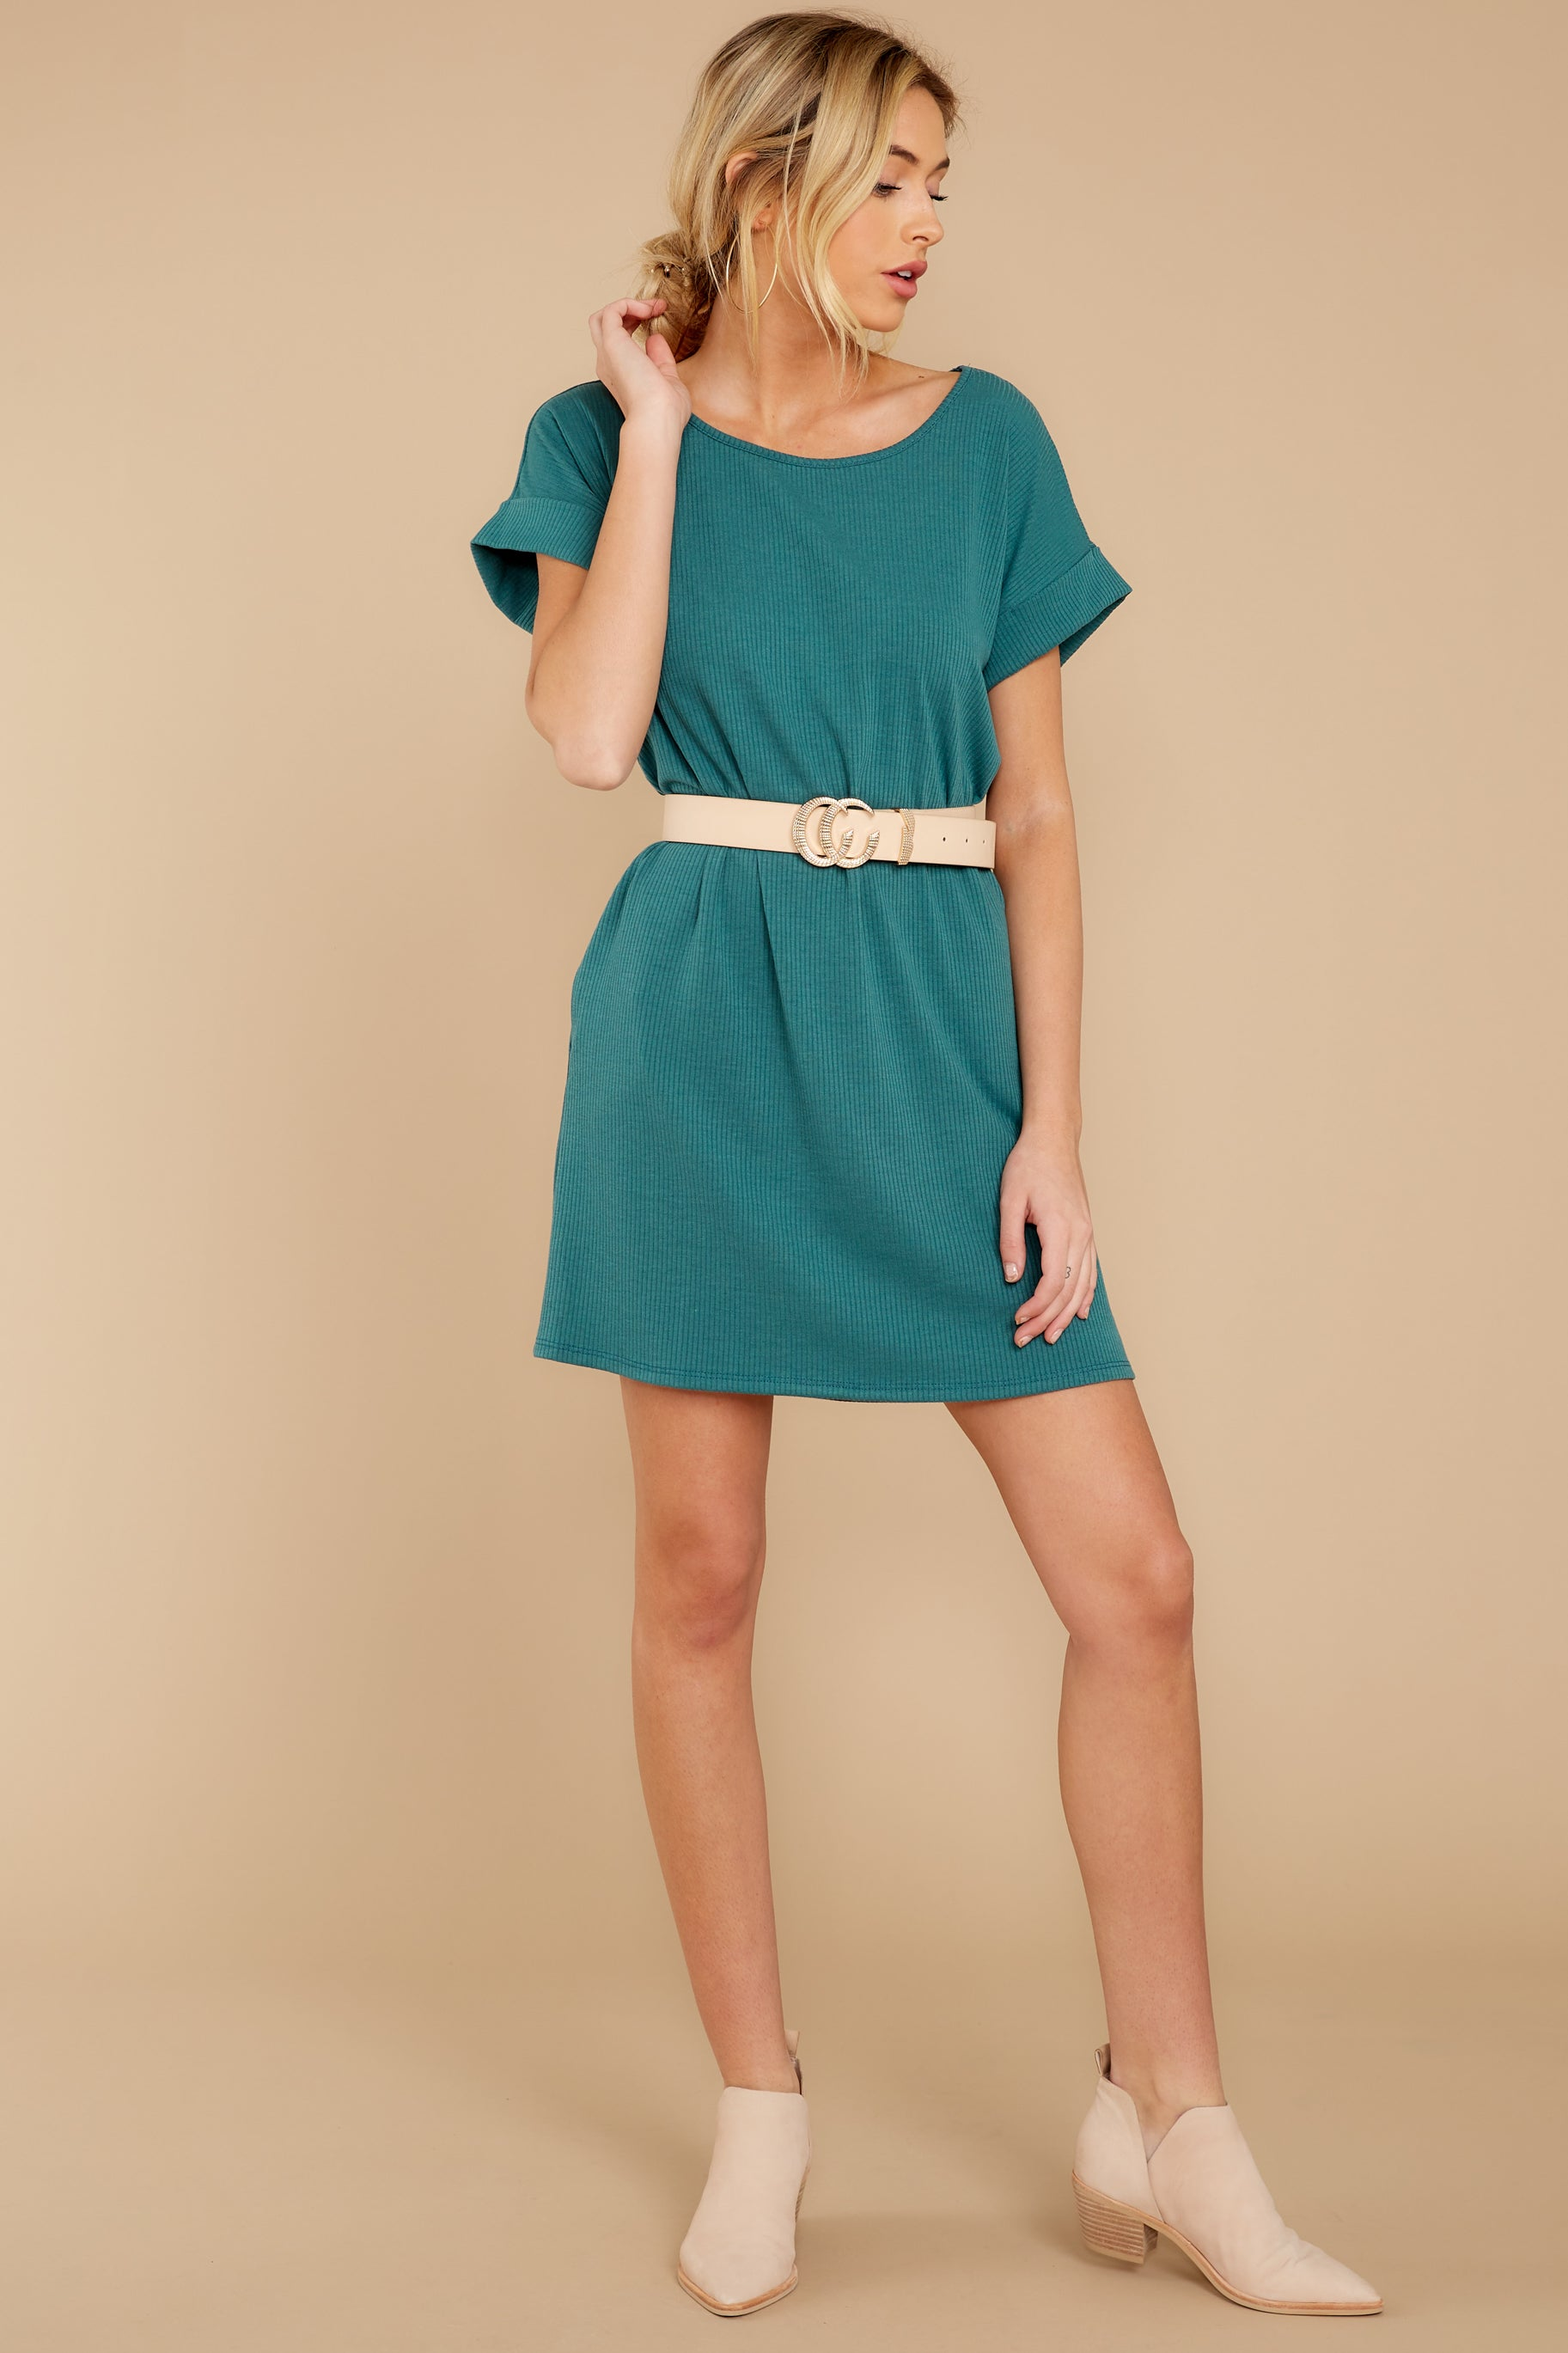 2 Anywhere She Goes Jade Green Dress at reddress.com